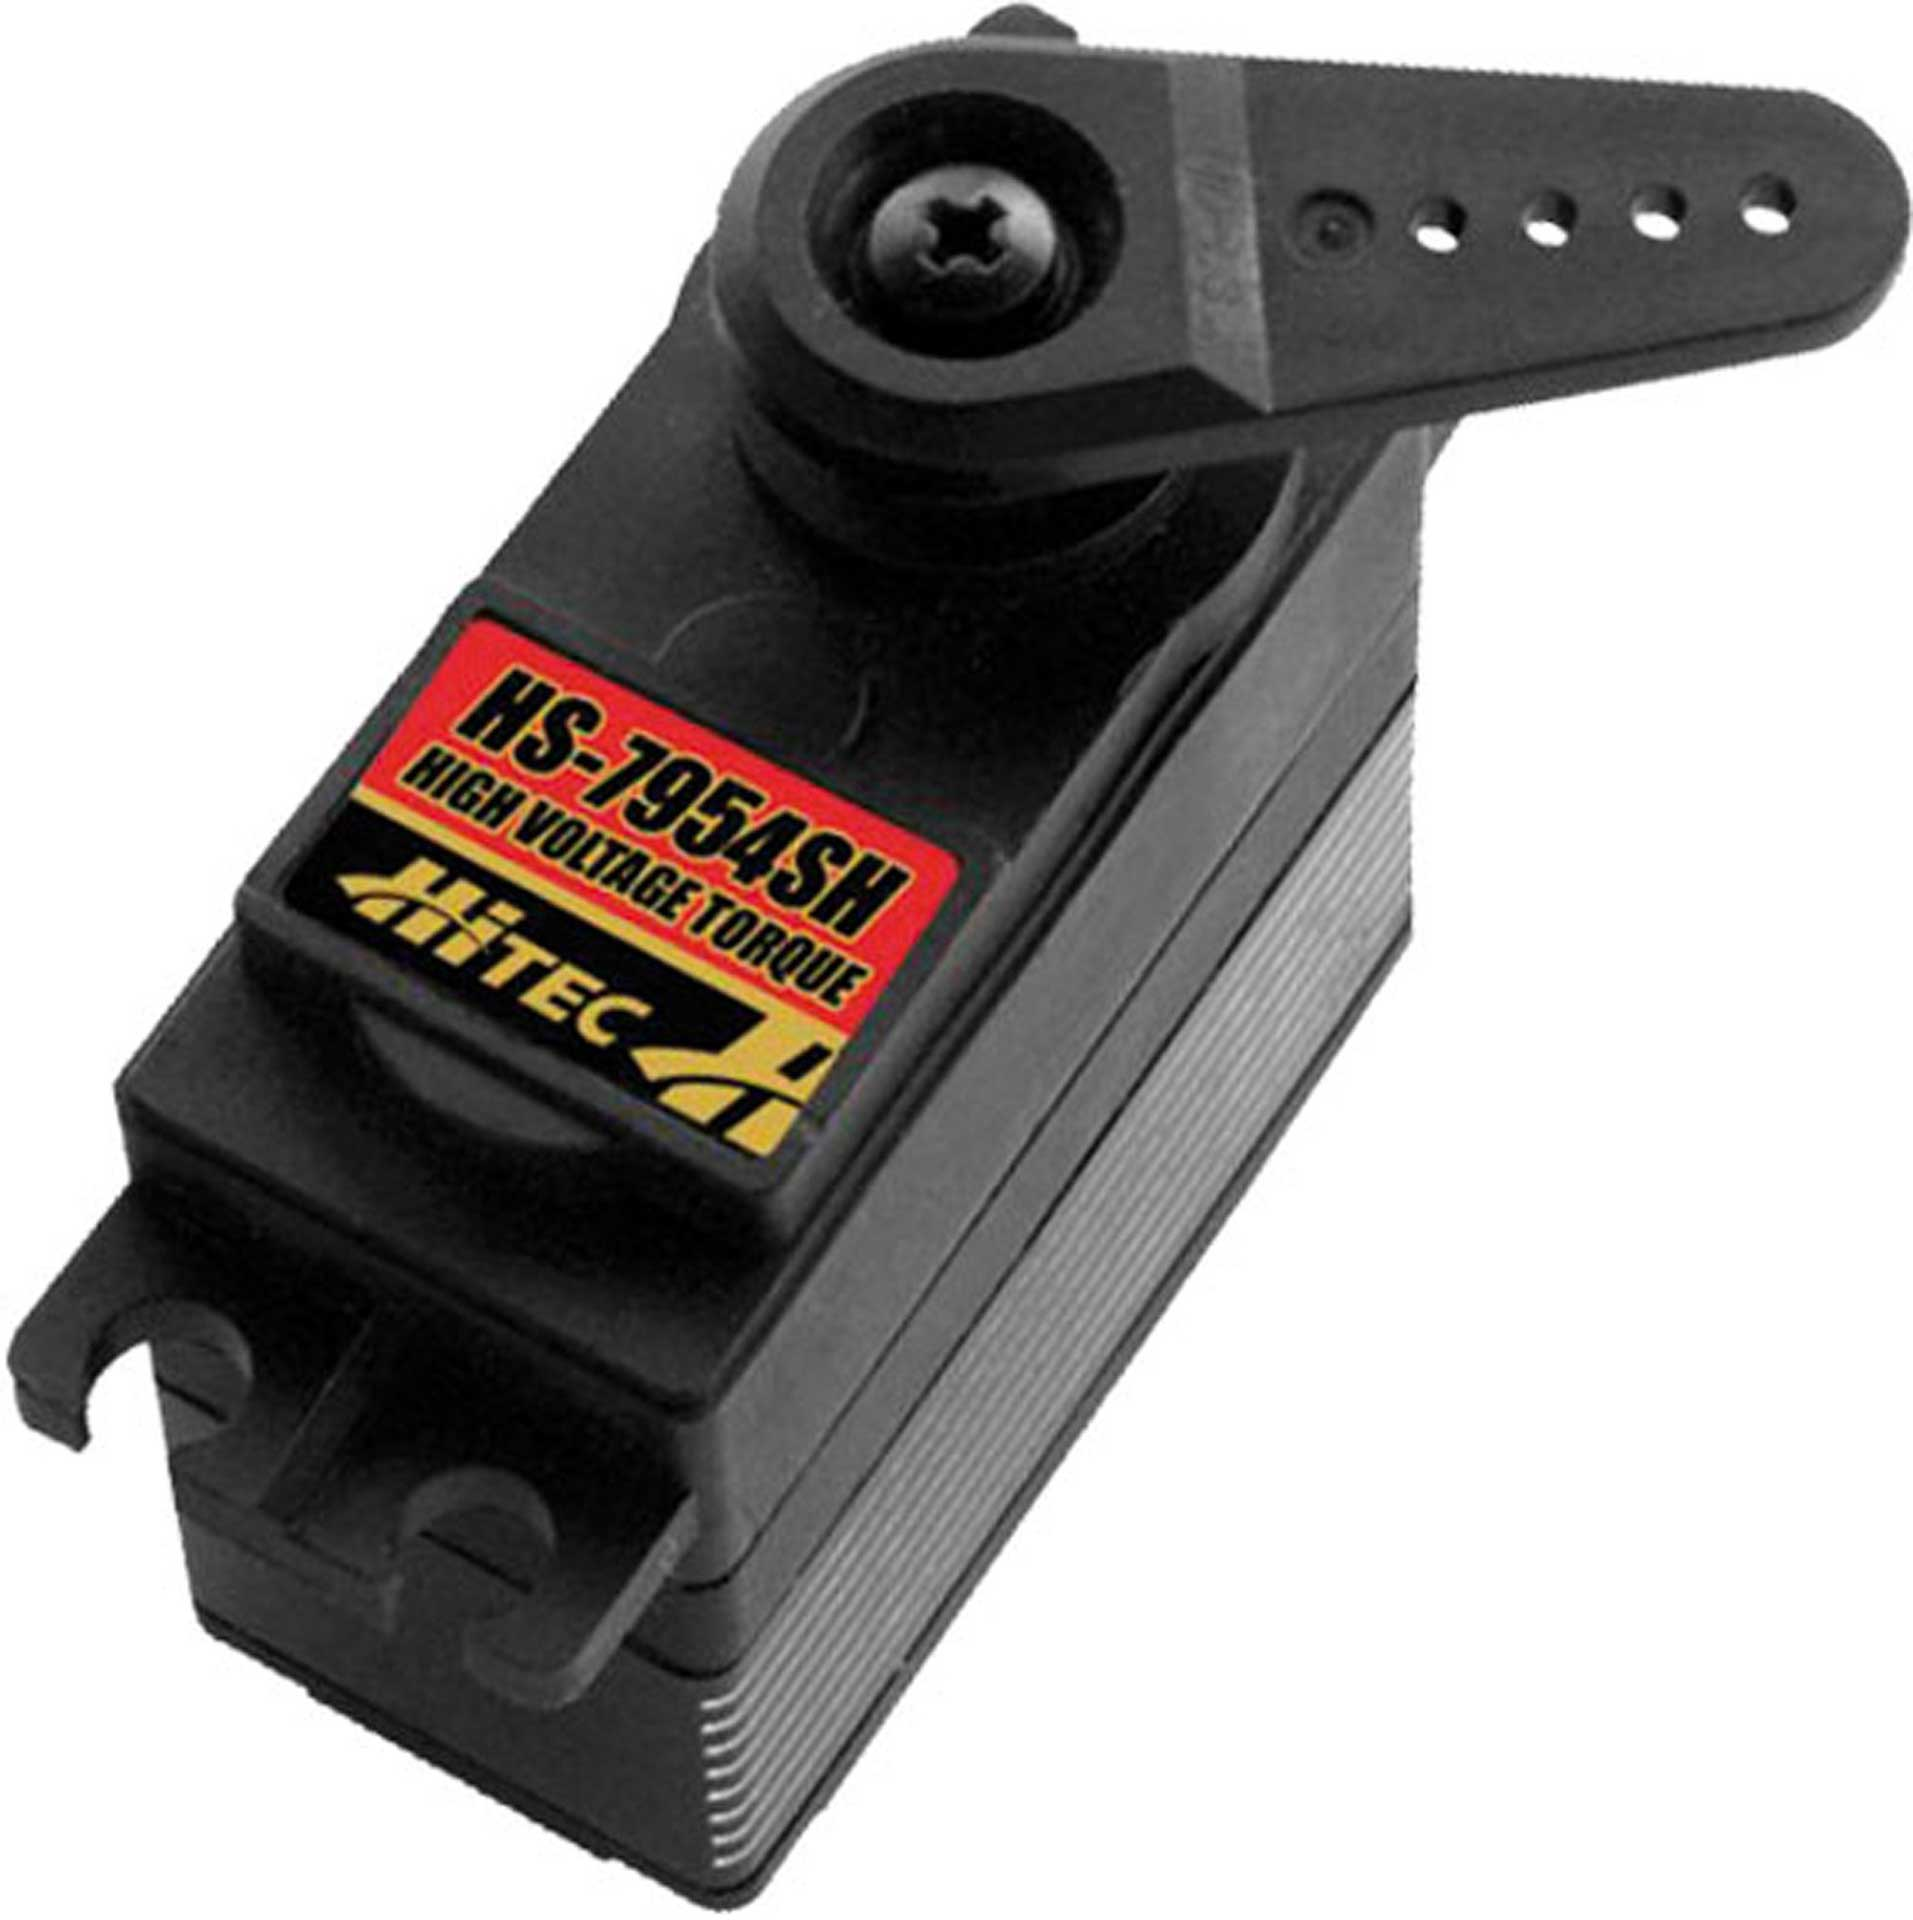 HITEC HS-7954 SH HIGH VOLTAGE SUPER TORQUE